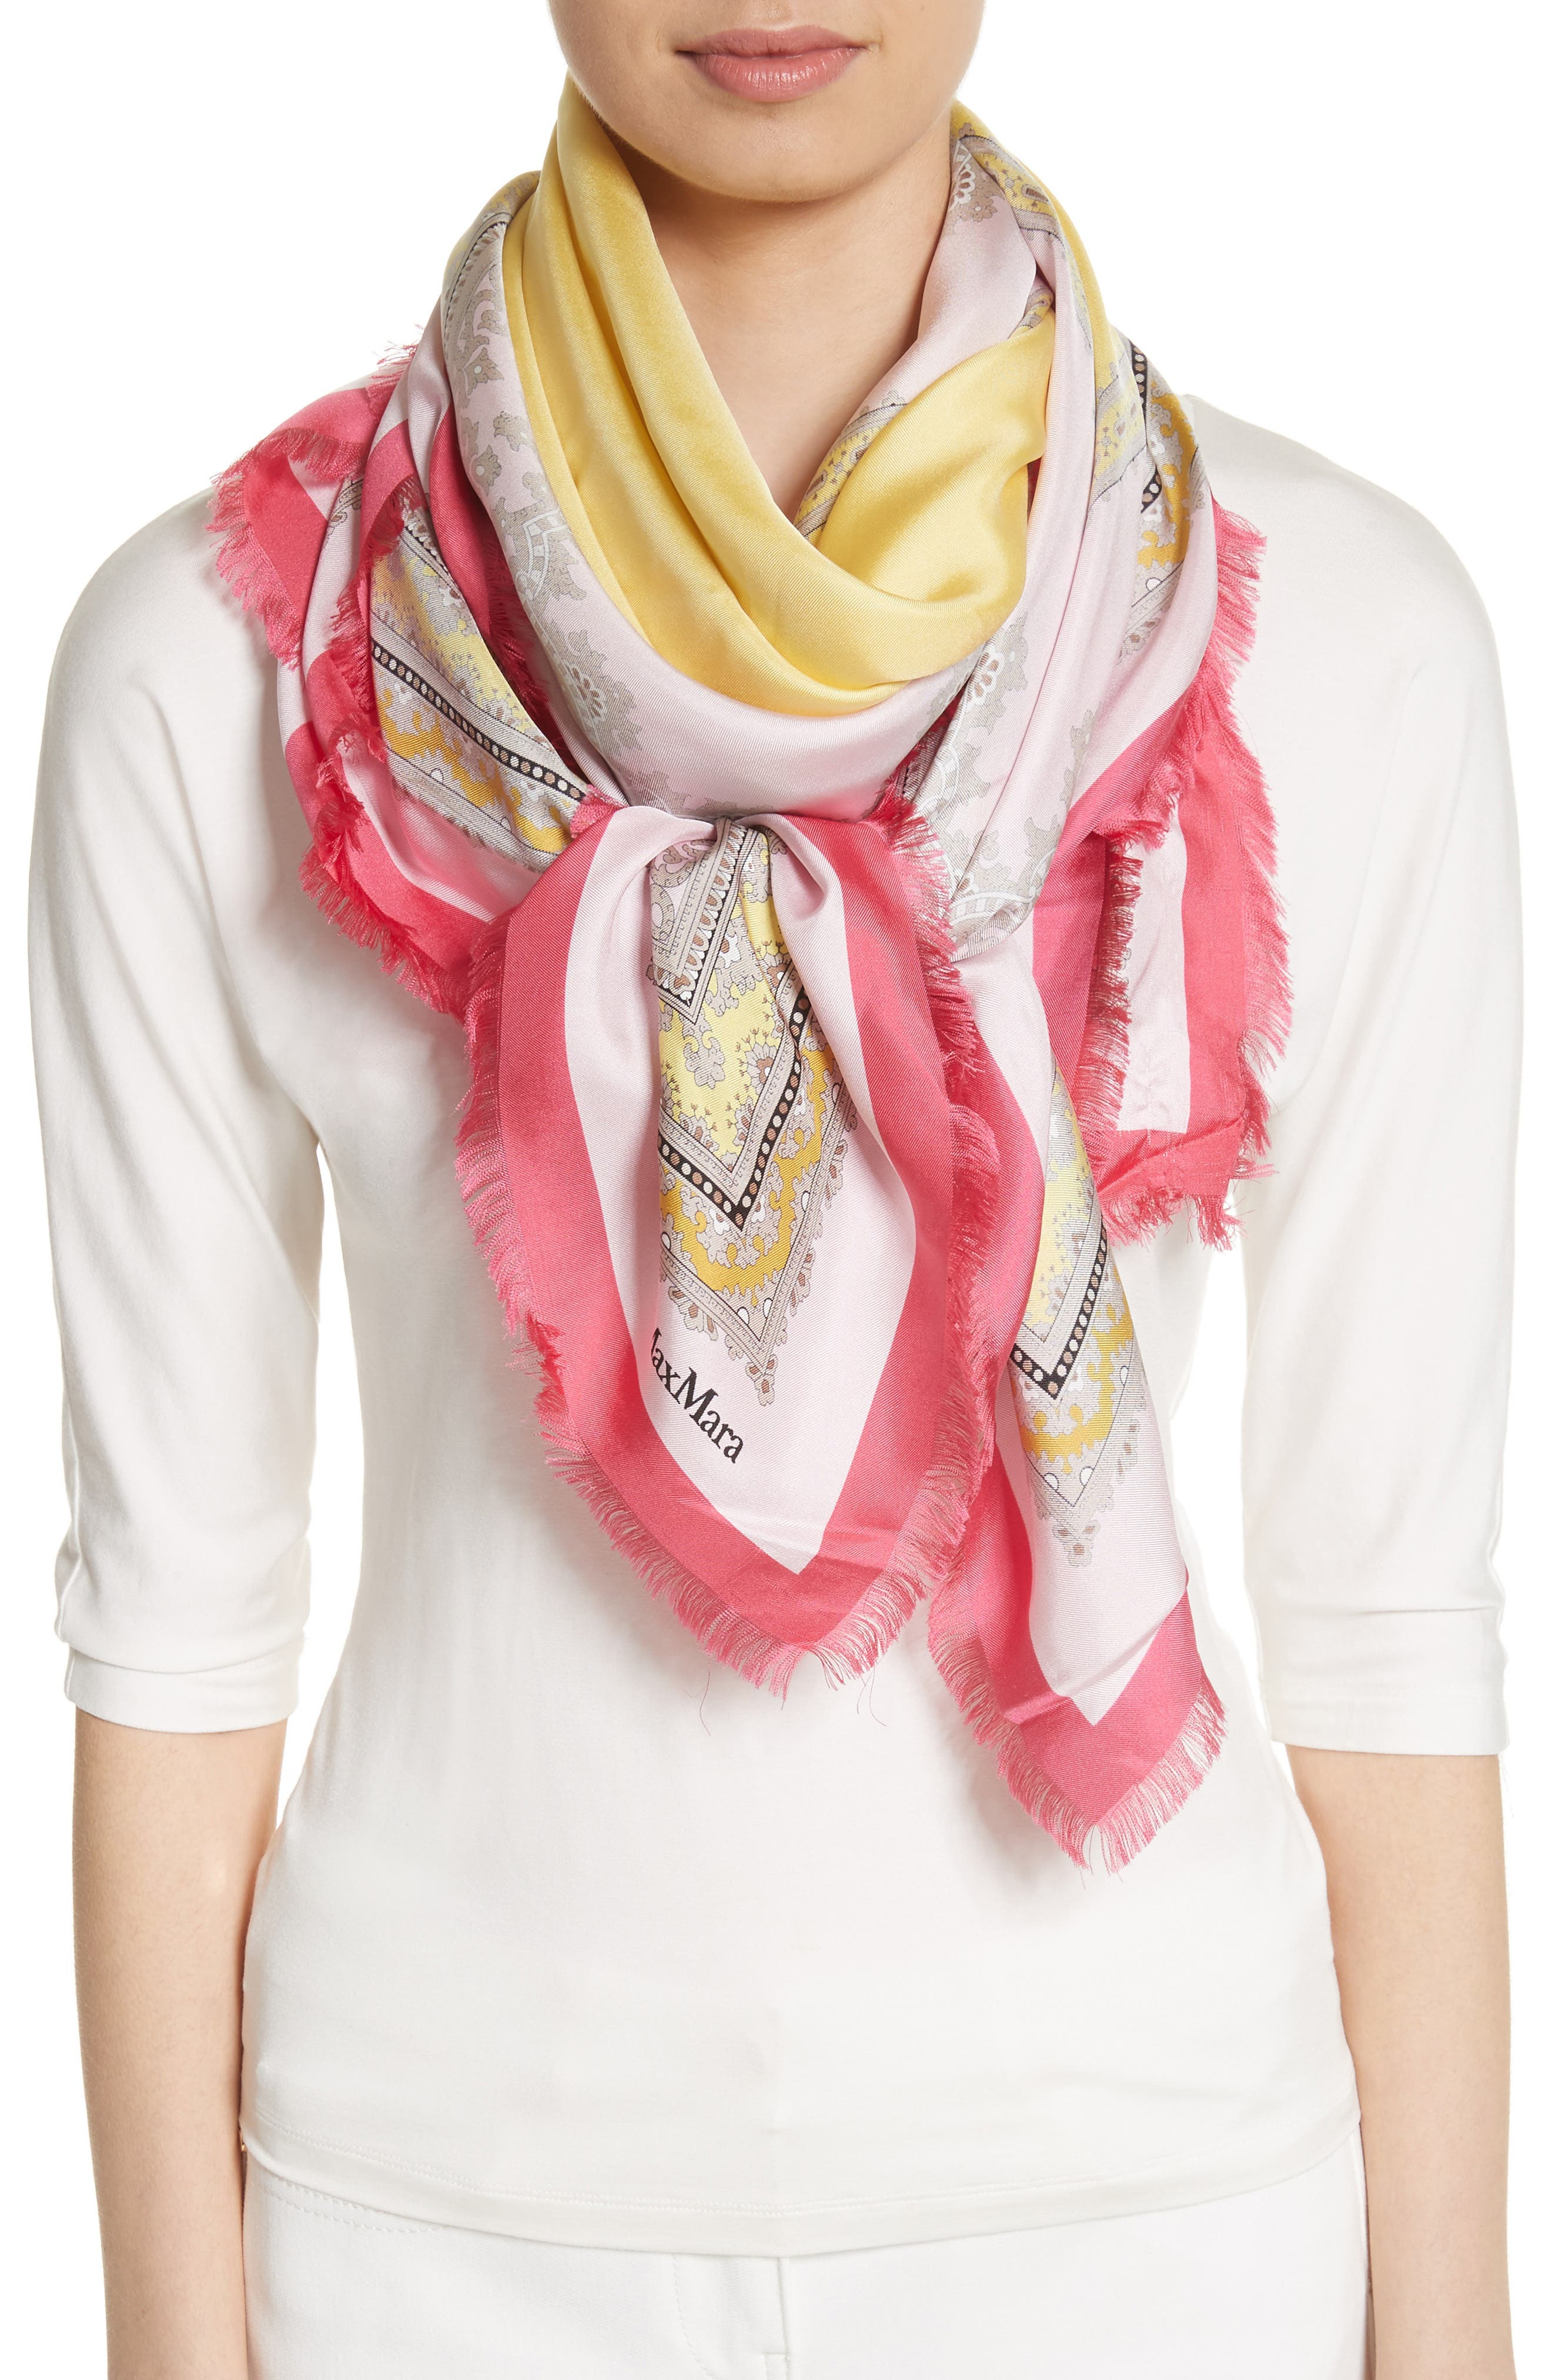 Ginepro Silk Scarf,                             Alternate thumbnail 2, color,                             664